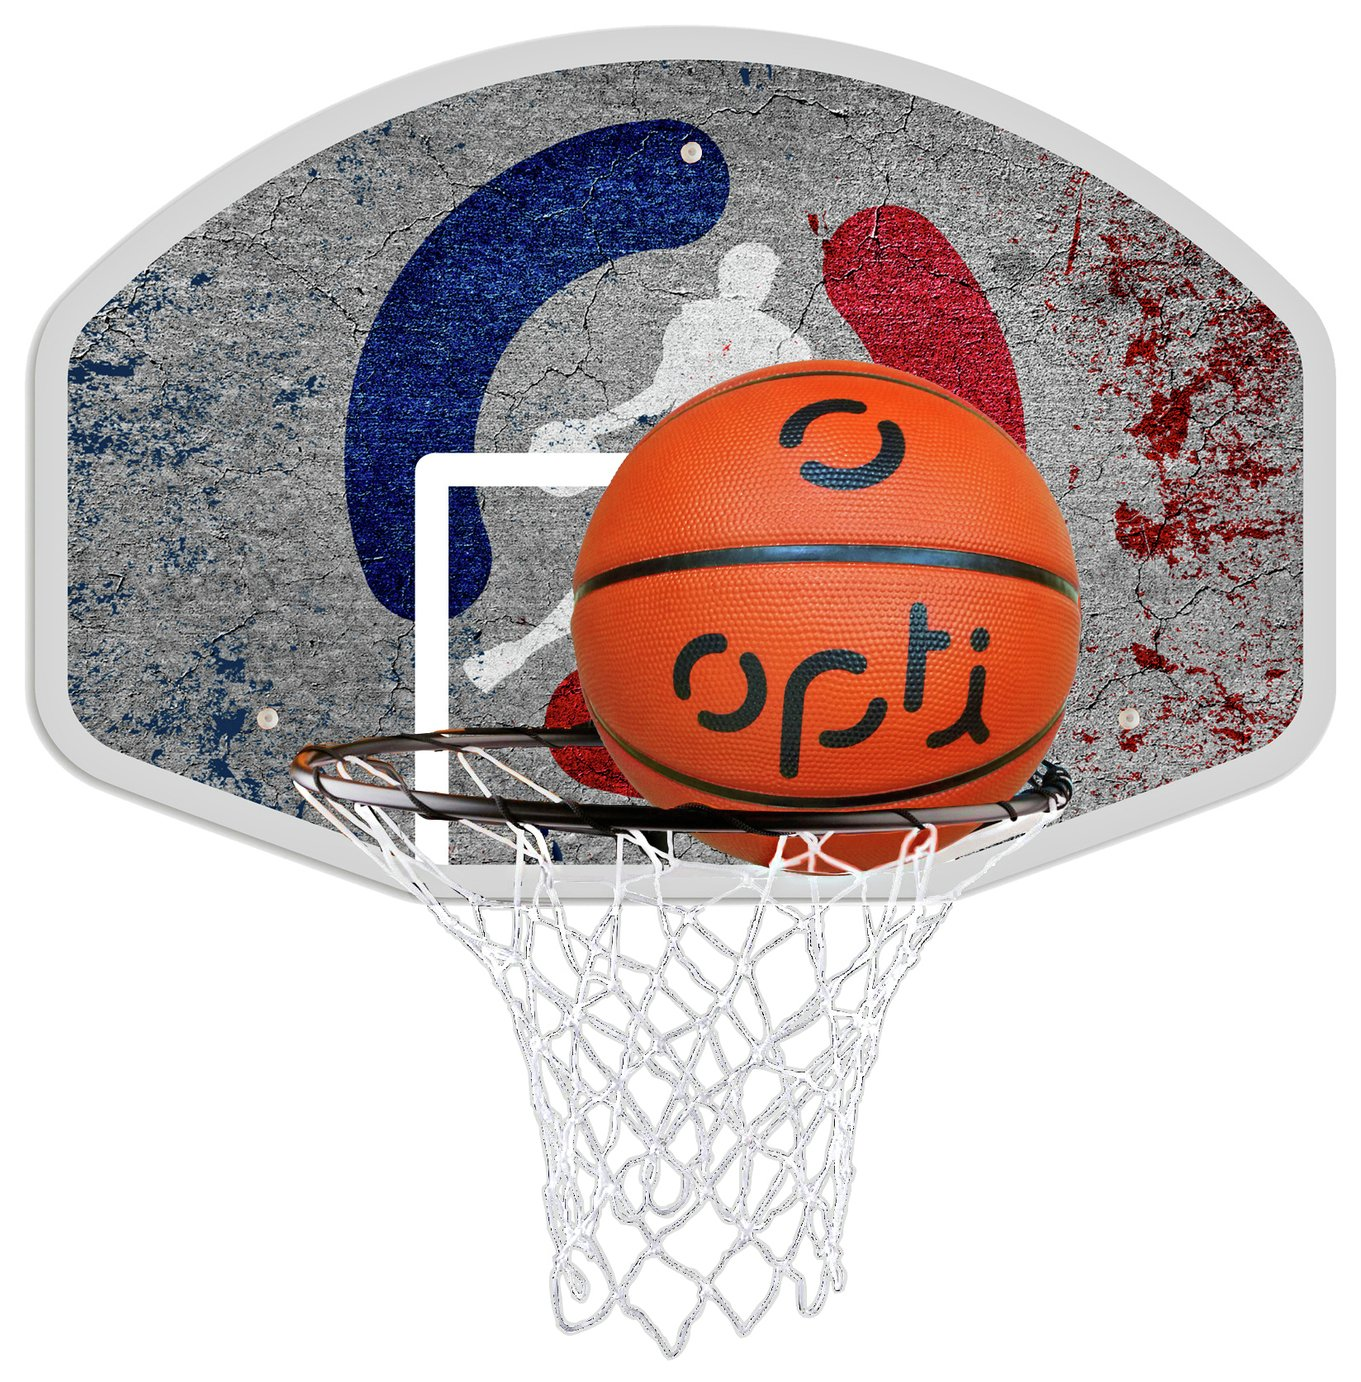 Opti Basketball Ring Board and Ball lowest price